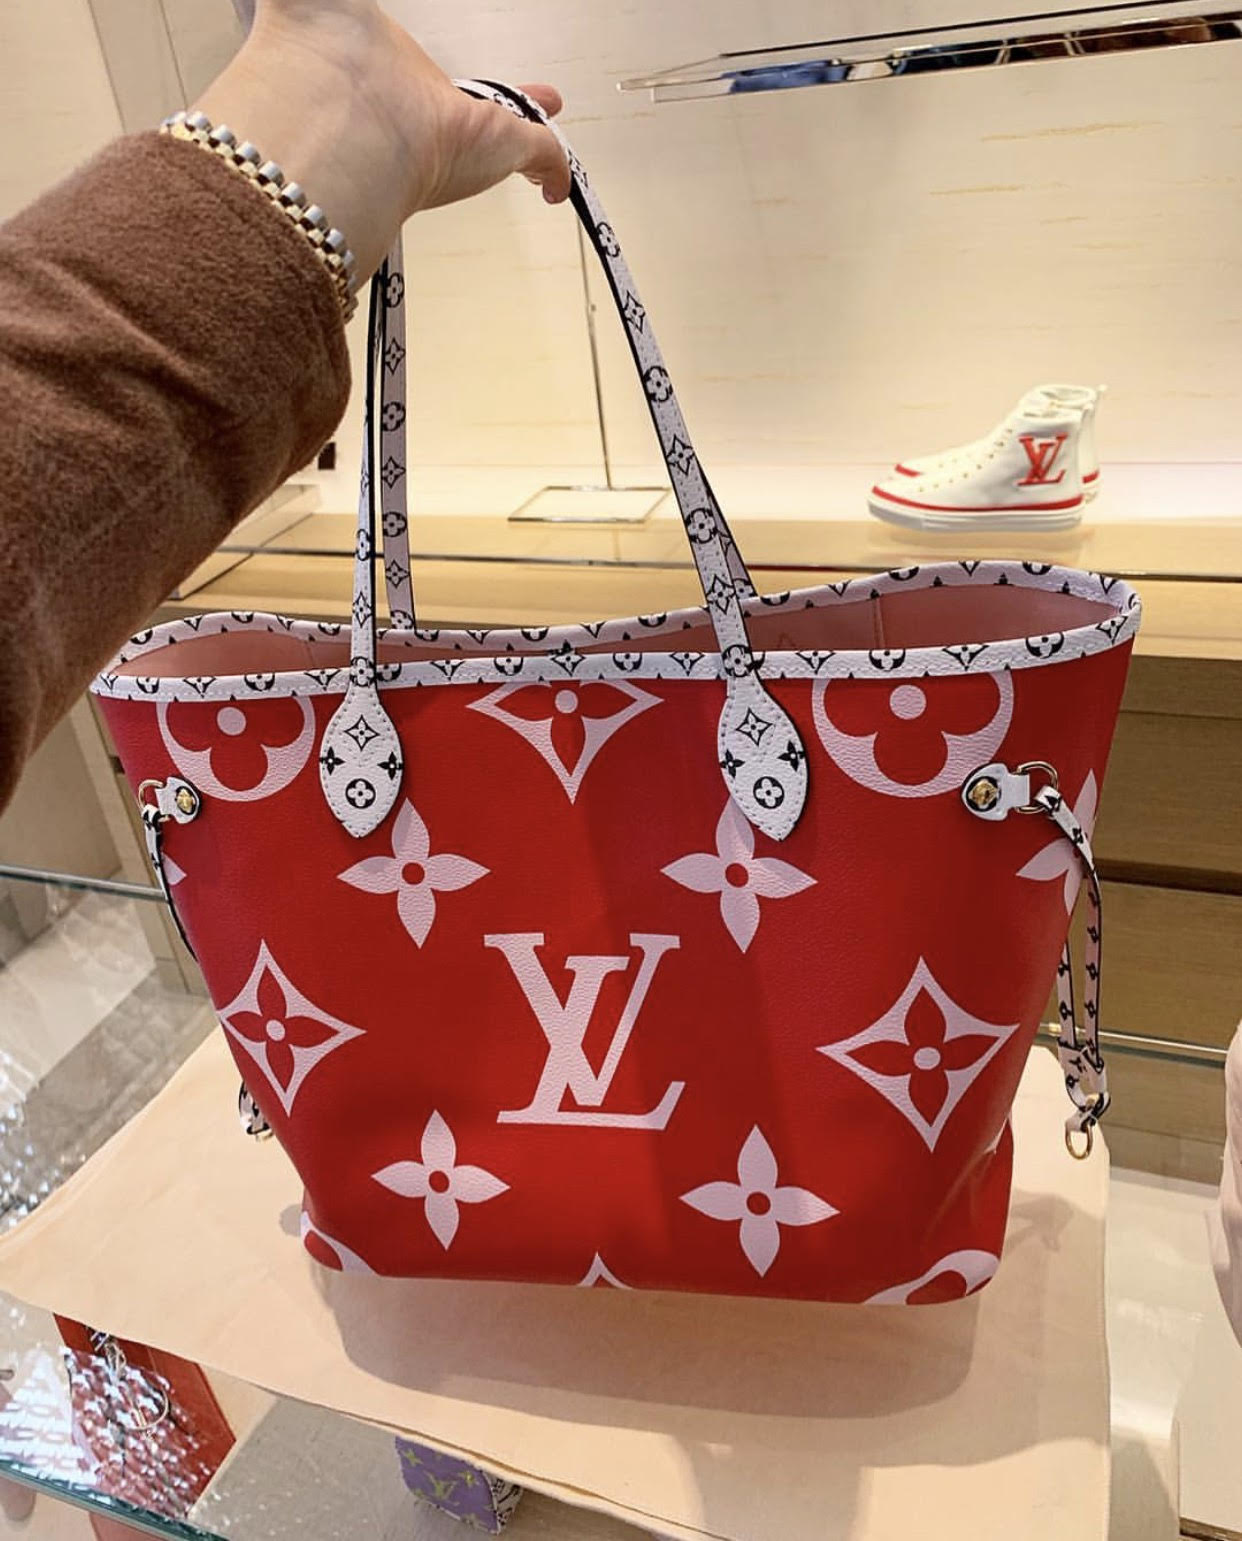 ab58f1331 Closer Look Of Louis Vuitton Neverfull MM New Collection 2019 ...